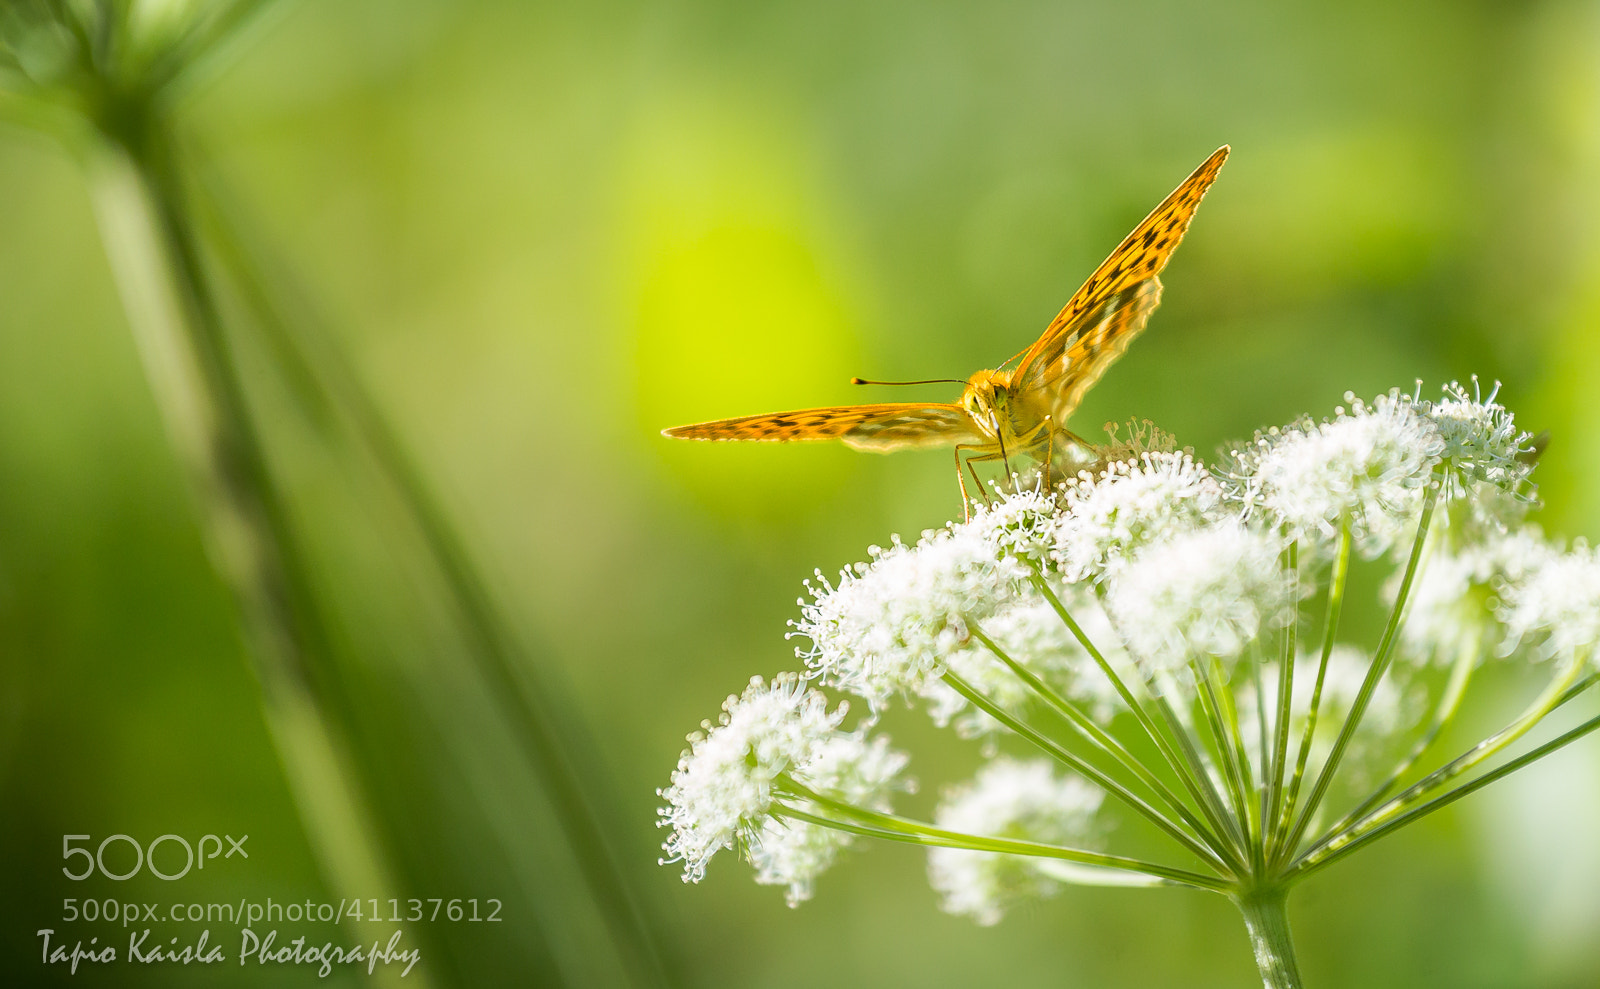 Photograph Silver-washed Fritillary on a Wild Angelica by Tapio Kaisla on 500px